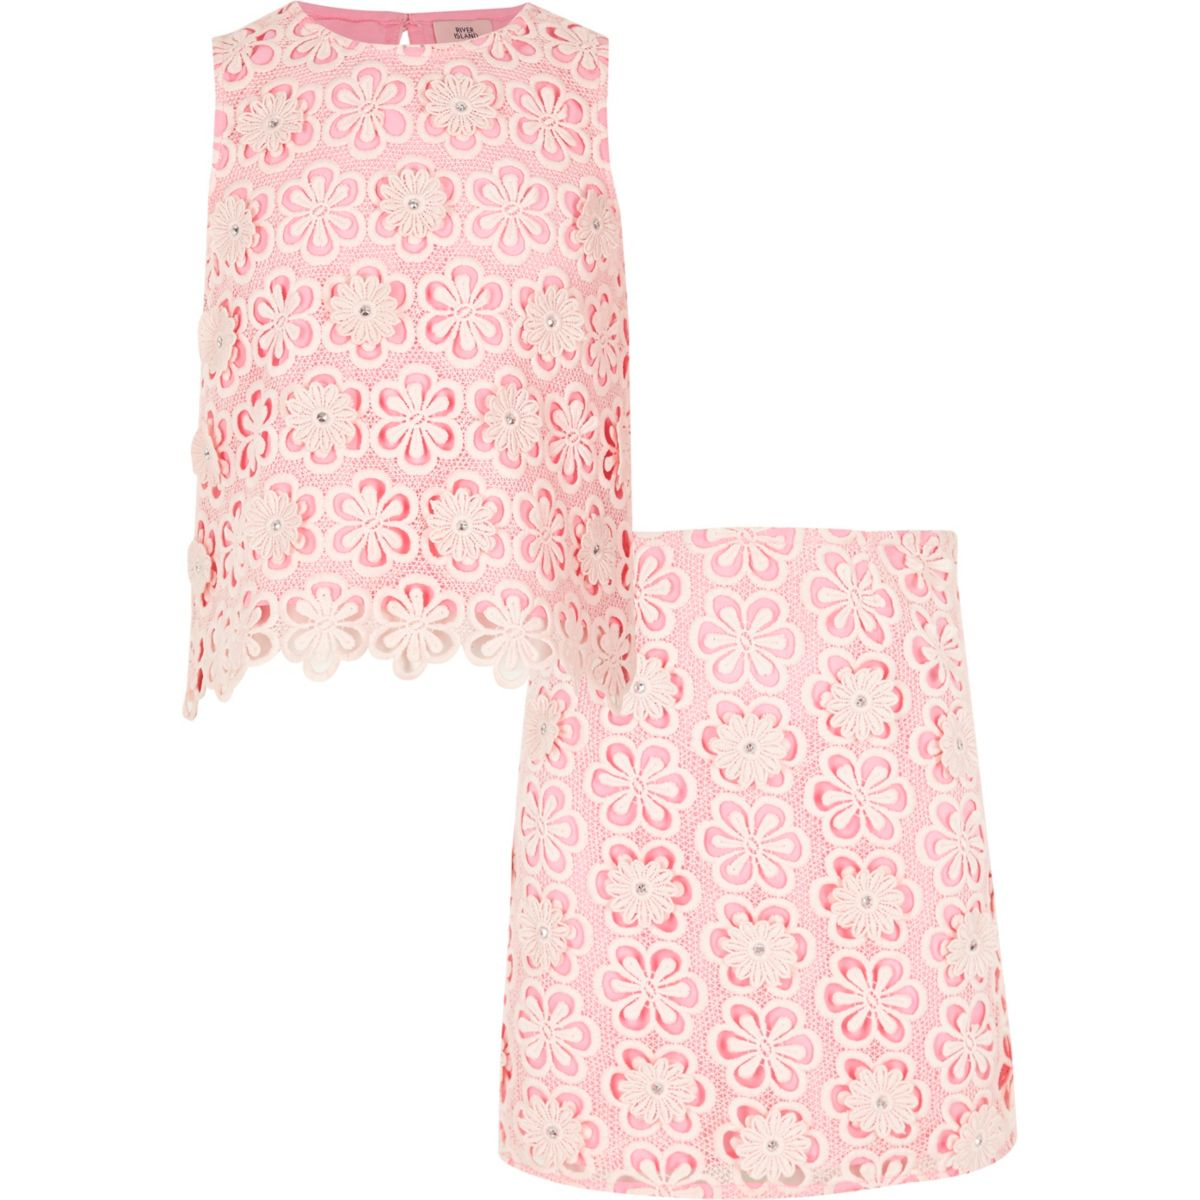 Girls pink lace shell top and skirt outfit